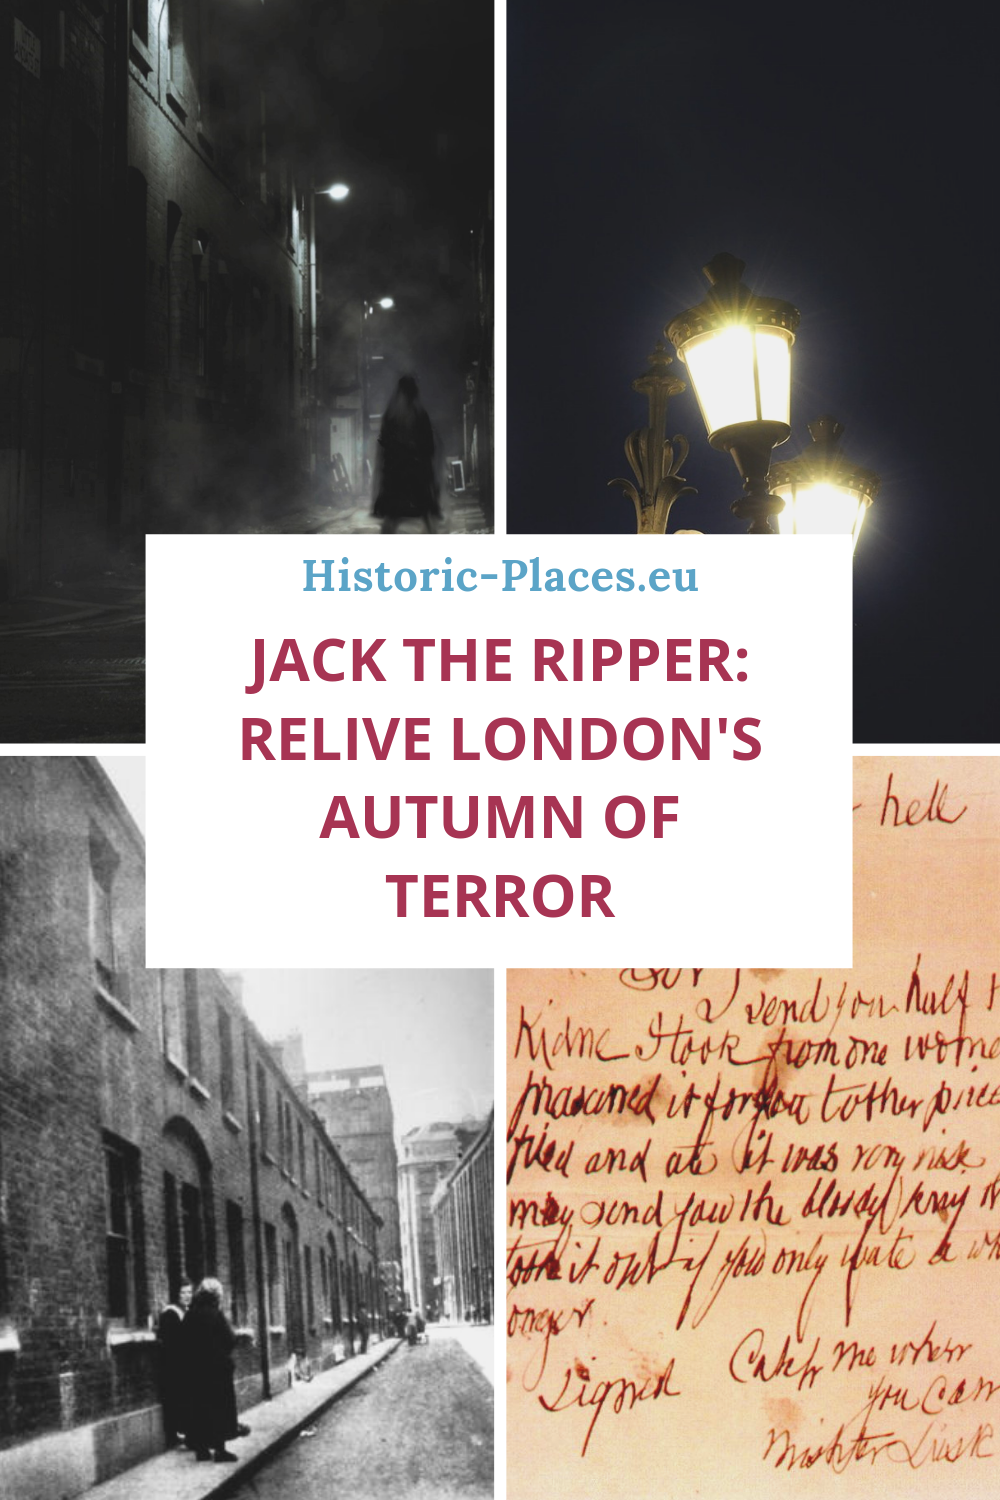 Jack the Ripper: Relive London's Autumn of Terror